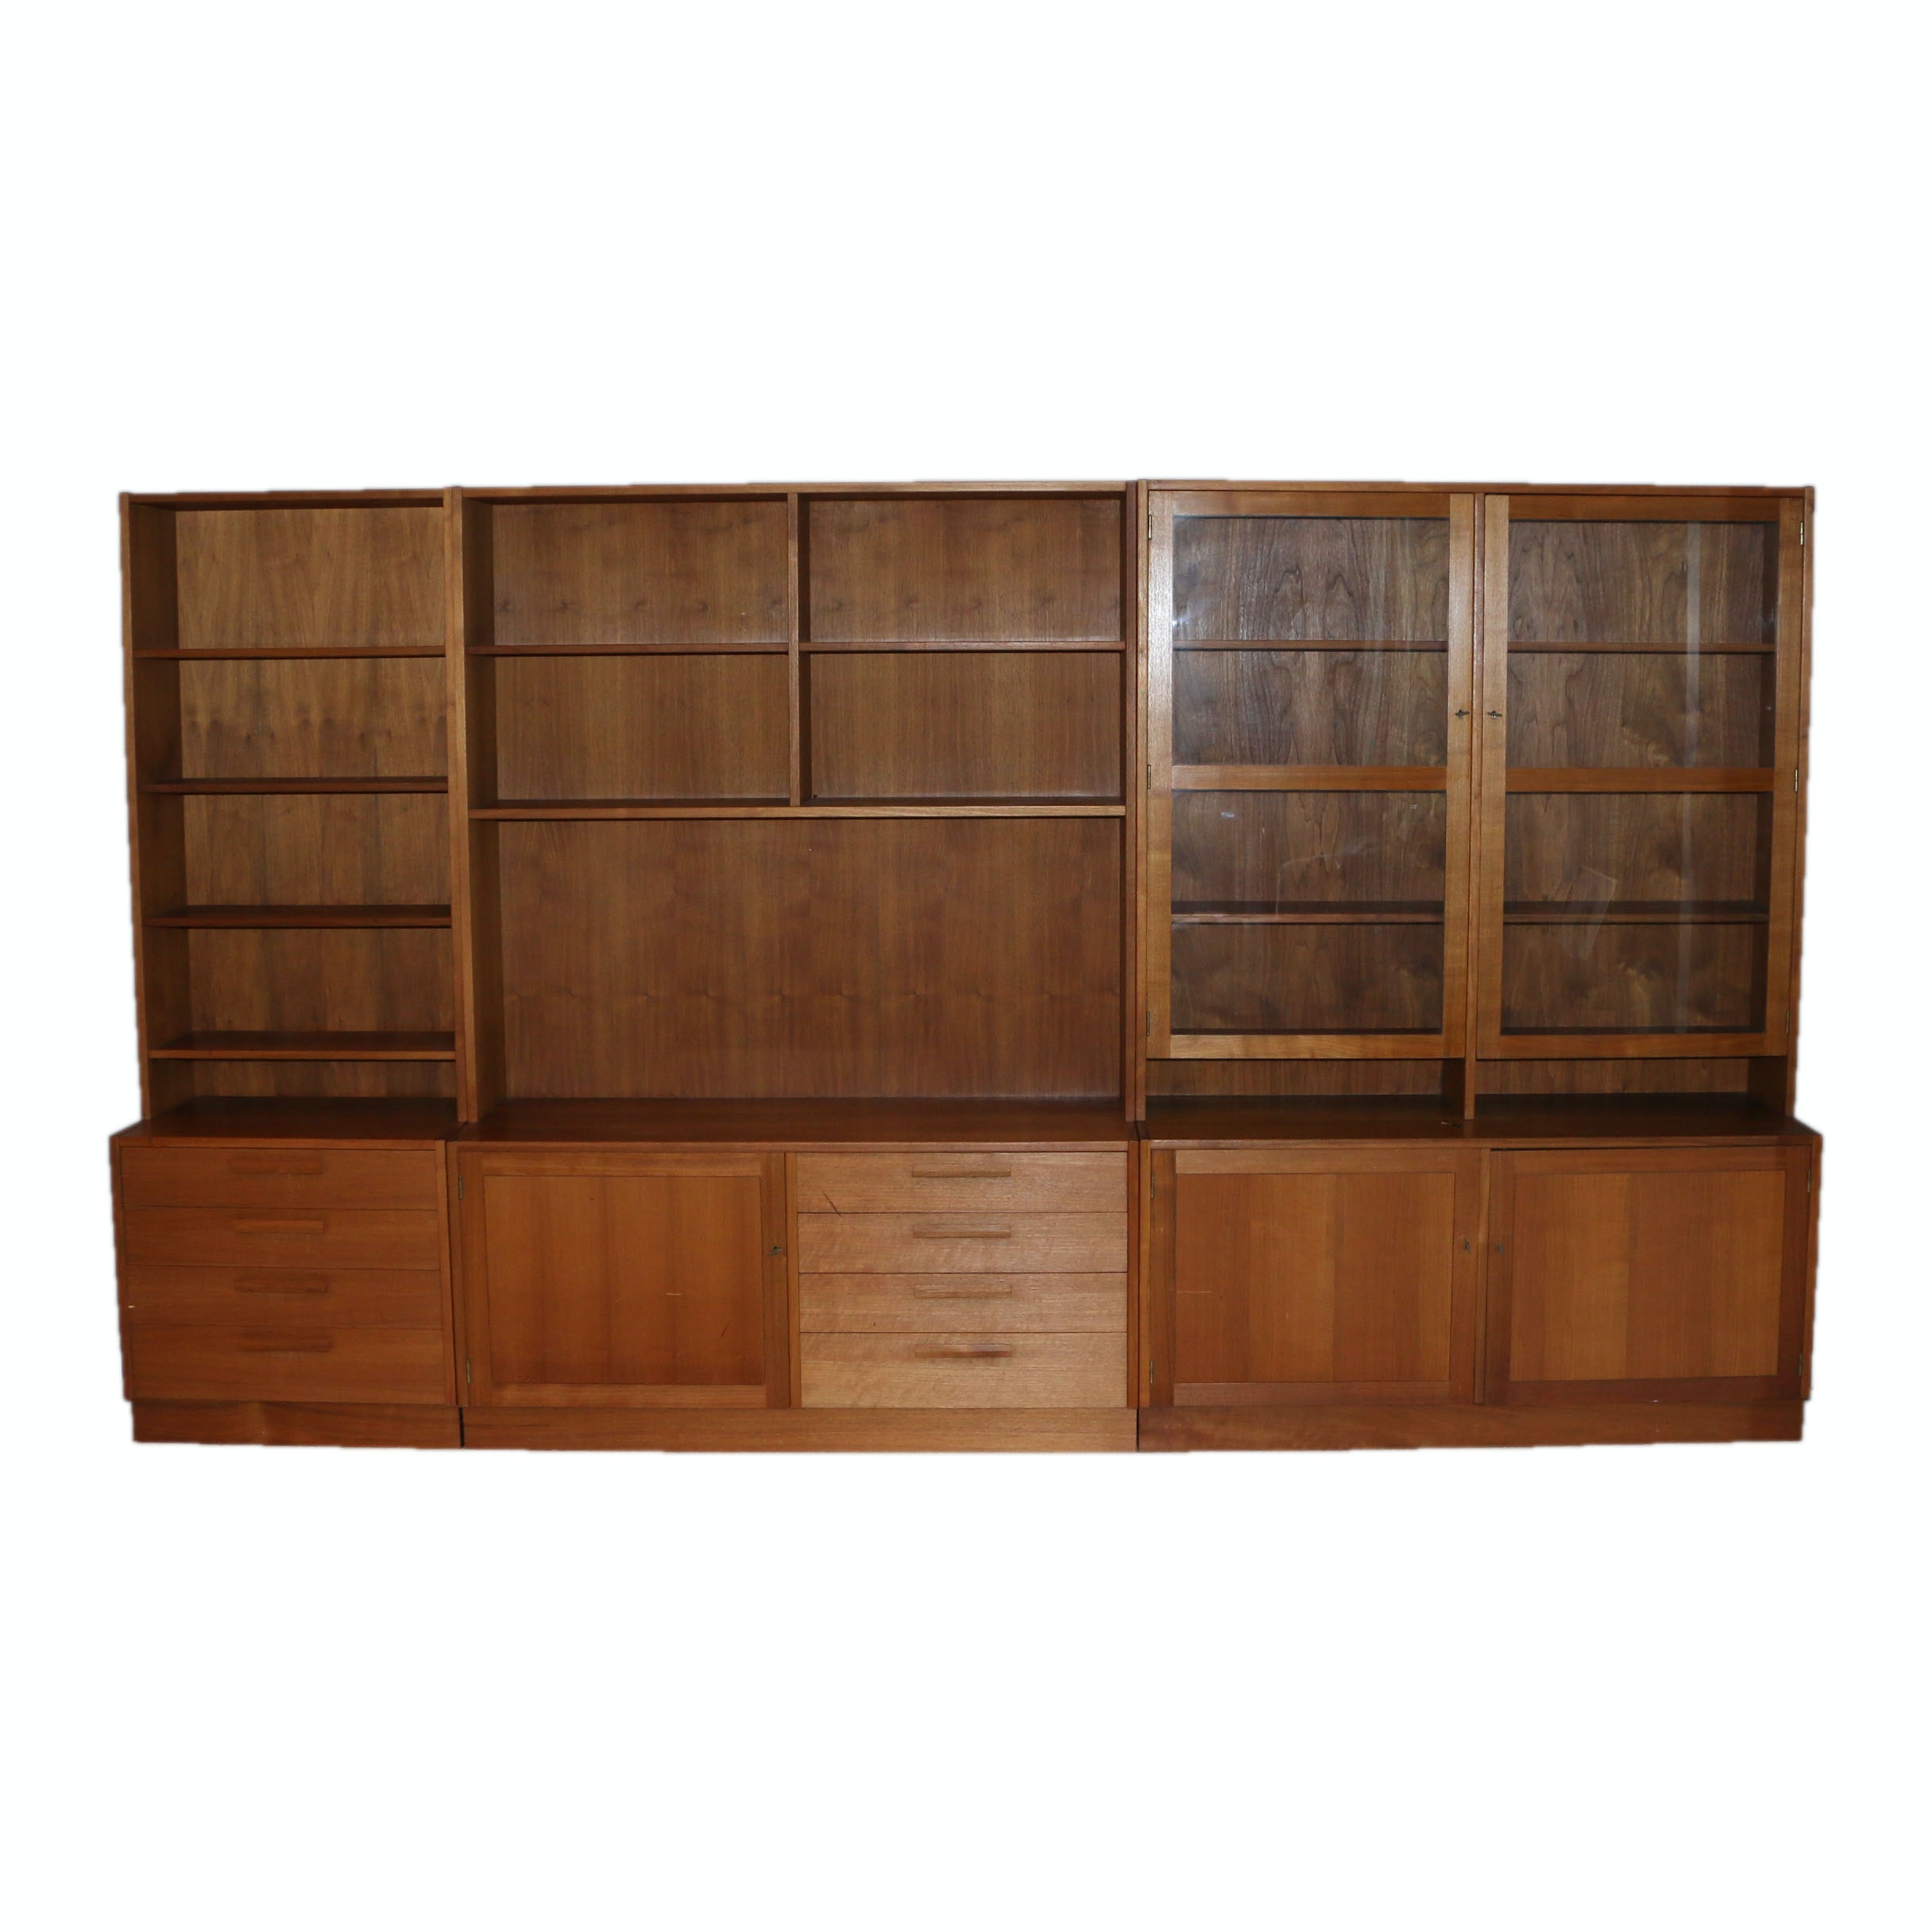 Swedish Modern Six Piece Shelving Cabinet and Curio Unit by Troeds